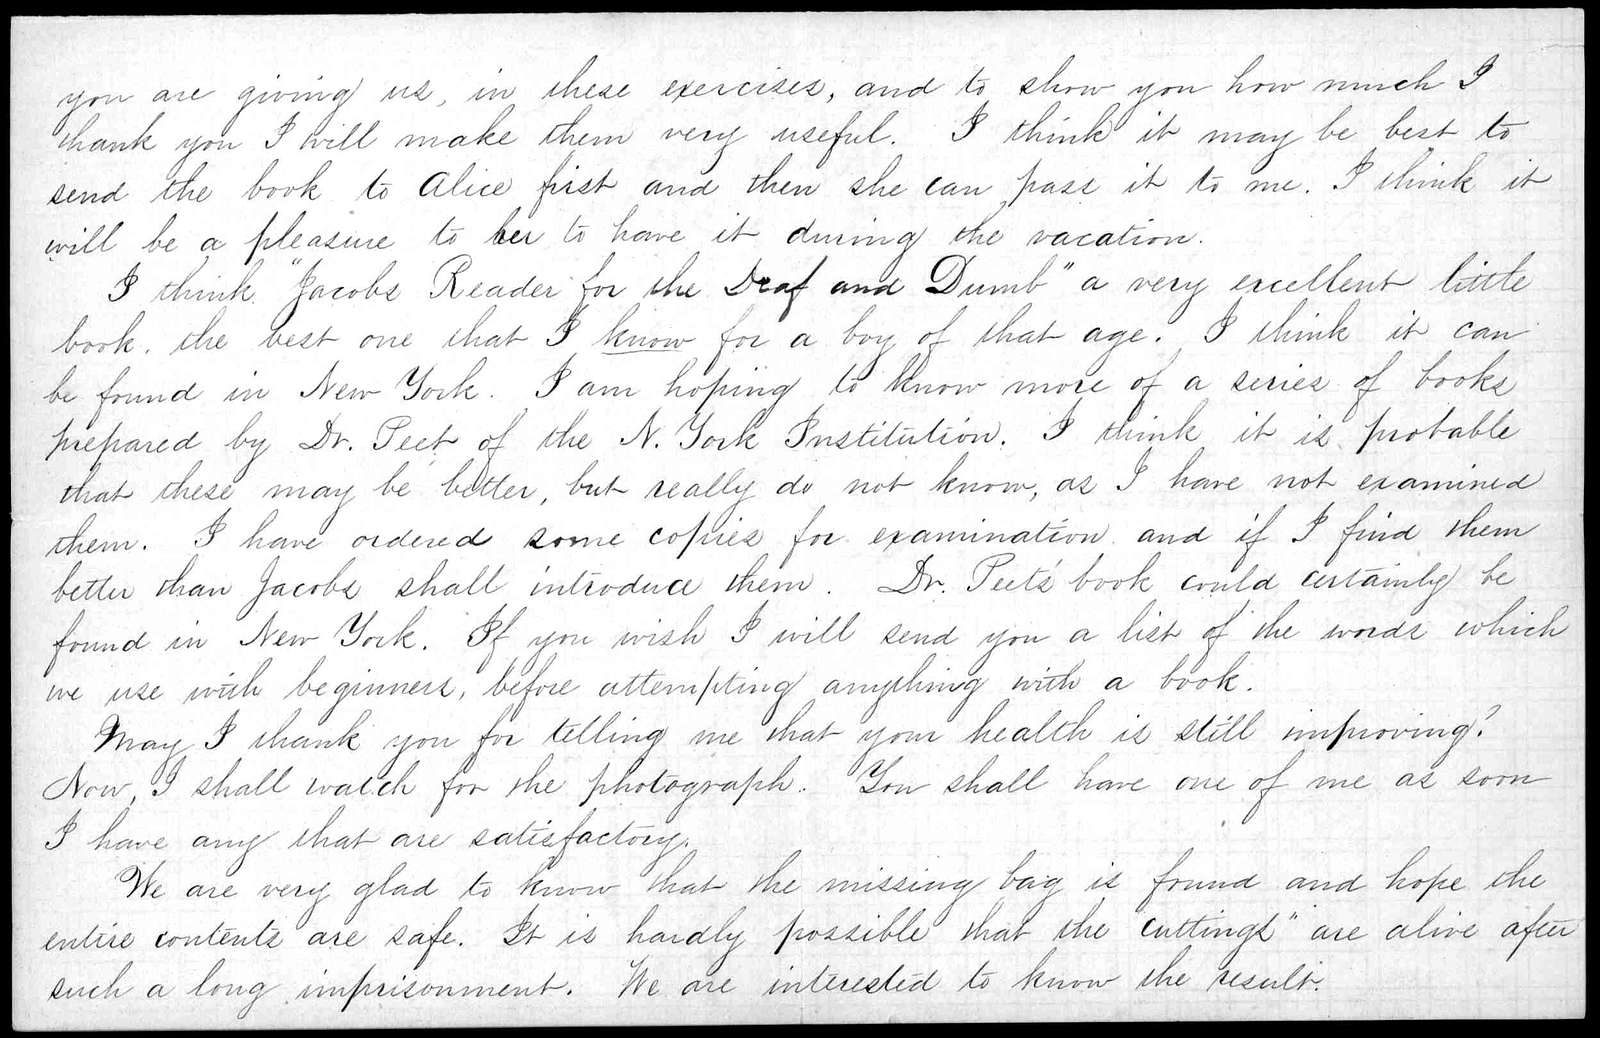 Letter from Sarah Fuller to Alexander Graham Bell, July 28, 1871